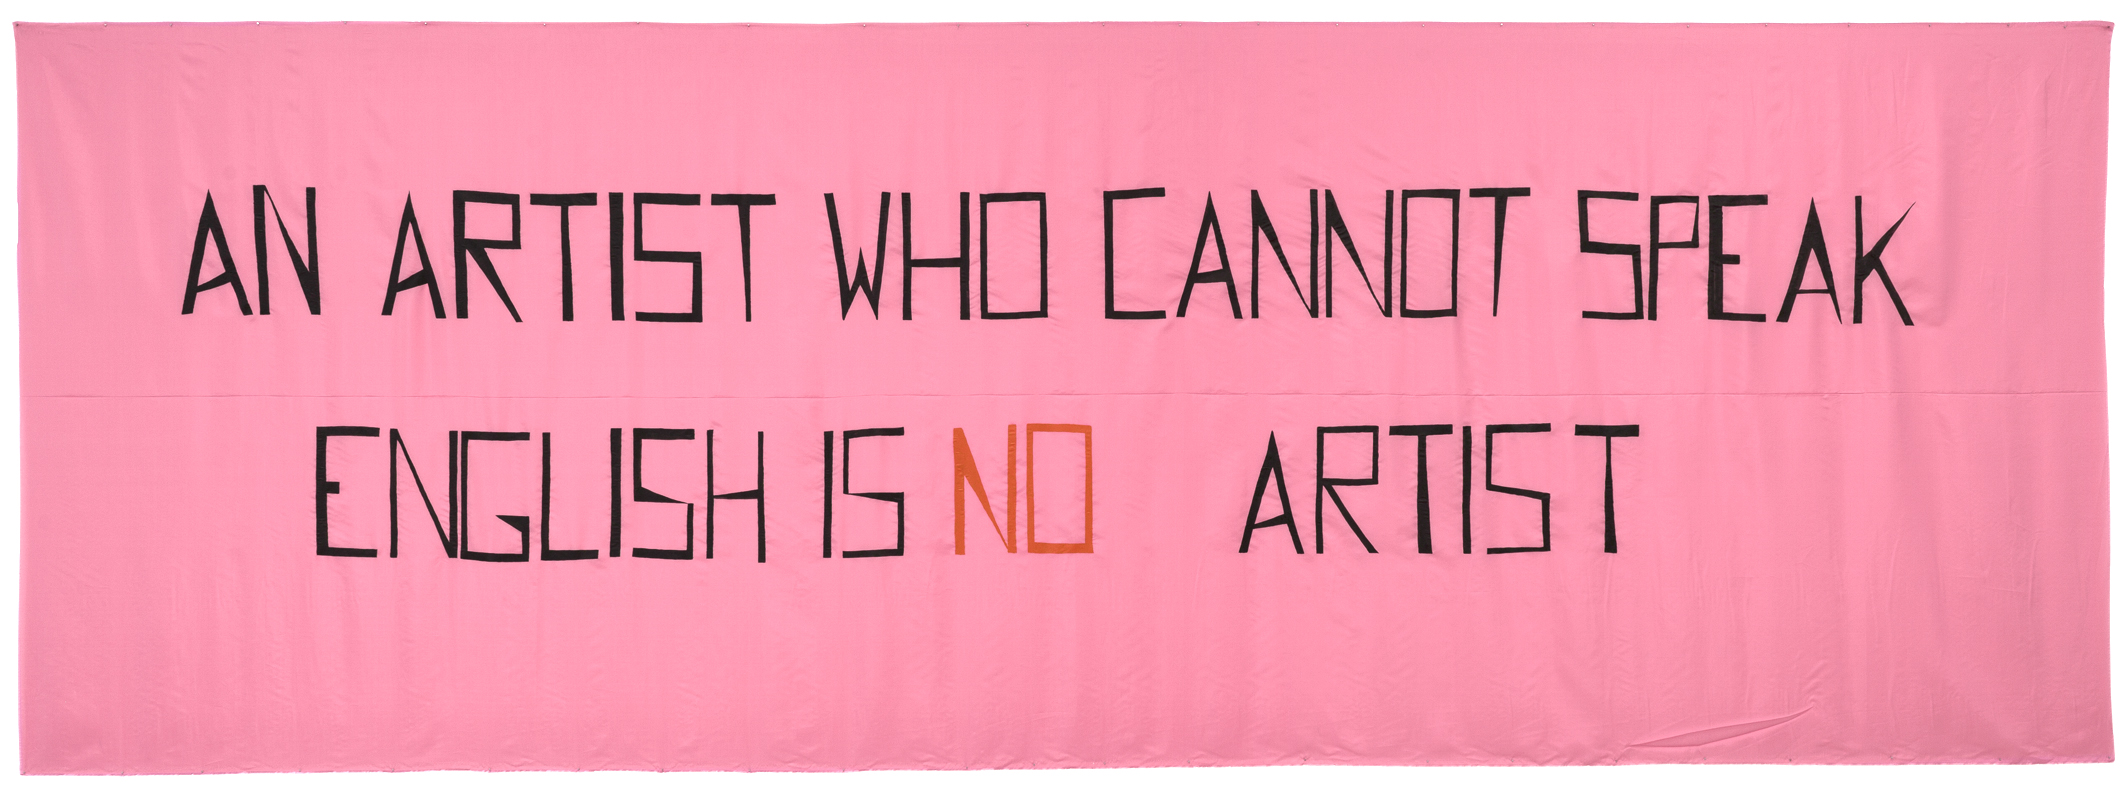 Mladen Stilinović, An Artist Who Cannot Speak English Is No Artist, 1992, acrylic on artificial silk, 140 x 430 cm, © Mladen Stilinovic's Estate, Zagreb / Boris Cvjetanović